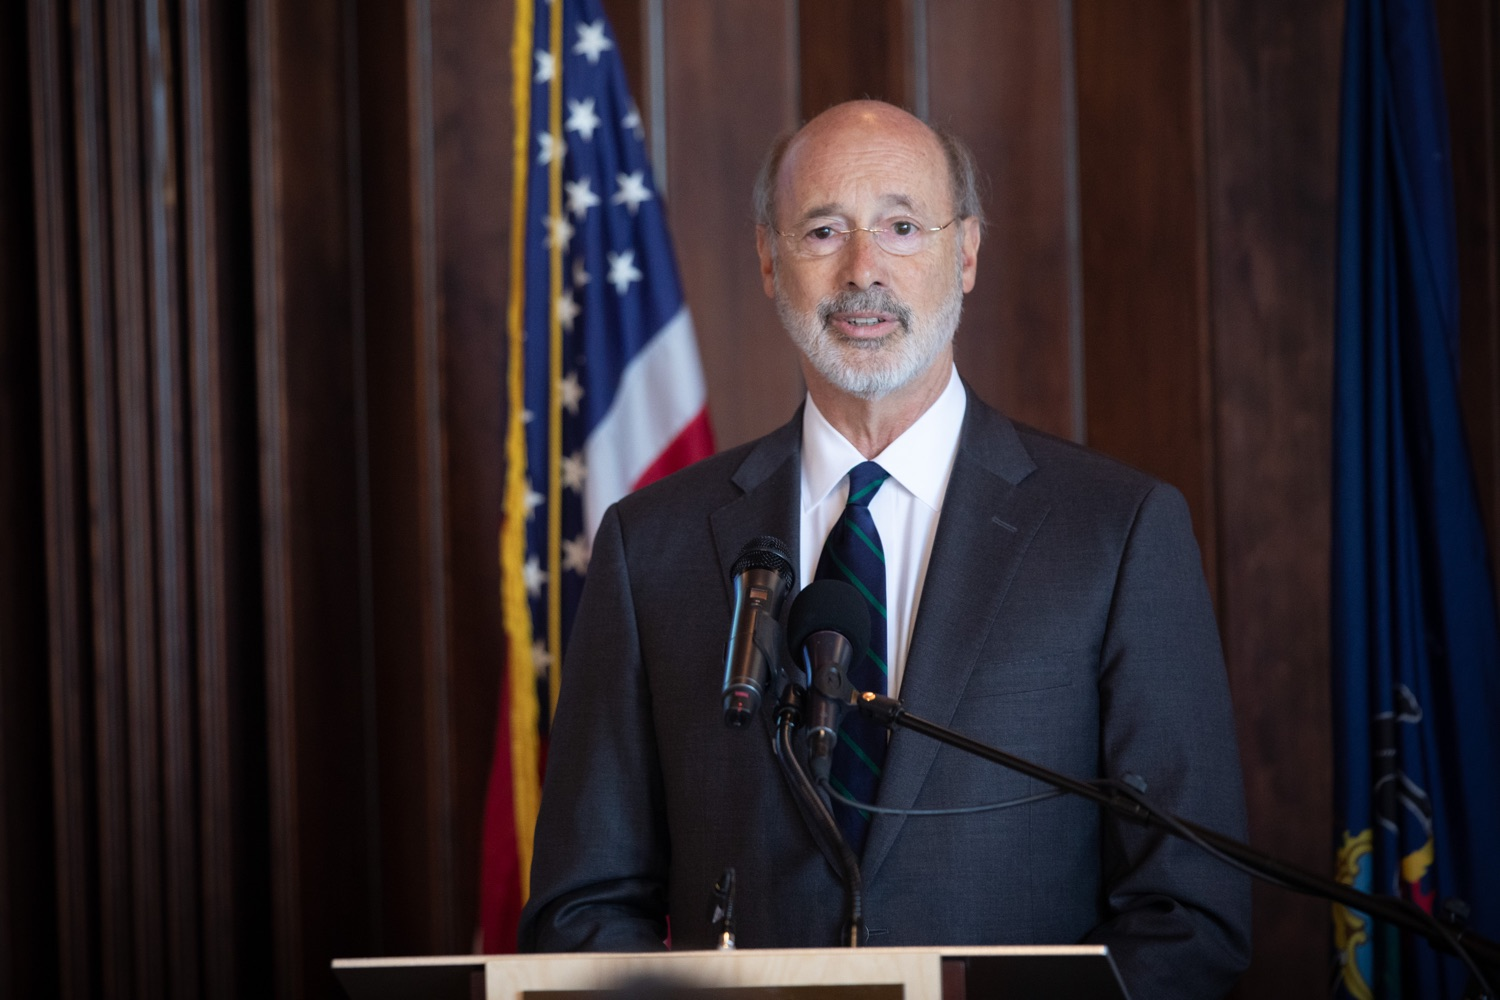 """<a href=""""https://filesource.wostreaming.net/commonwealthofpa/photo/17467_gov_opioids_dz_012.JPG"""" target=""""_blank"""">⇣Download Photo<br></a>Boalsburg, PA  Governor Tom Wolf addressing the summit. Governor Tom Wolf today kicked off his administrations first Opioid Command Center Opioid Summit: Think Globally, Act Locally, which brought together 200 individuals helping their communities fight the opioid crisis, including community organizations, non-profits, schools, health care workers, addiction and recovery specialists, and families affected by the opioid crisis.  Tuesday, October 1, 2019"""